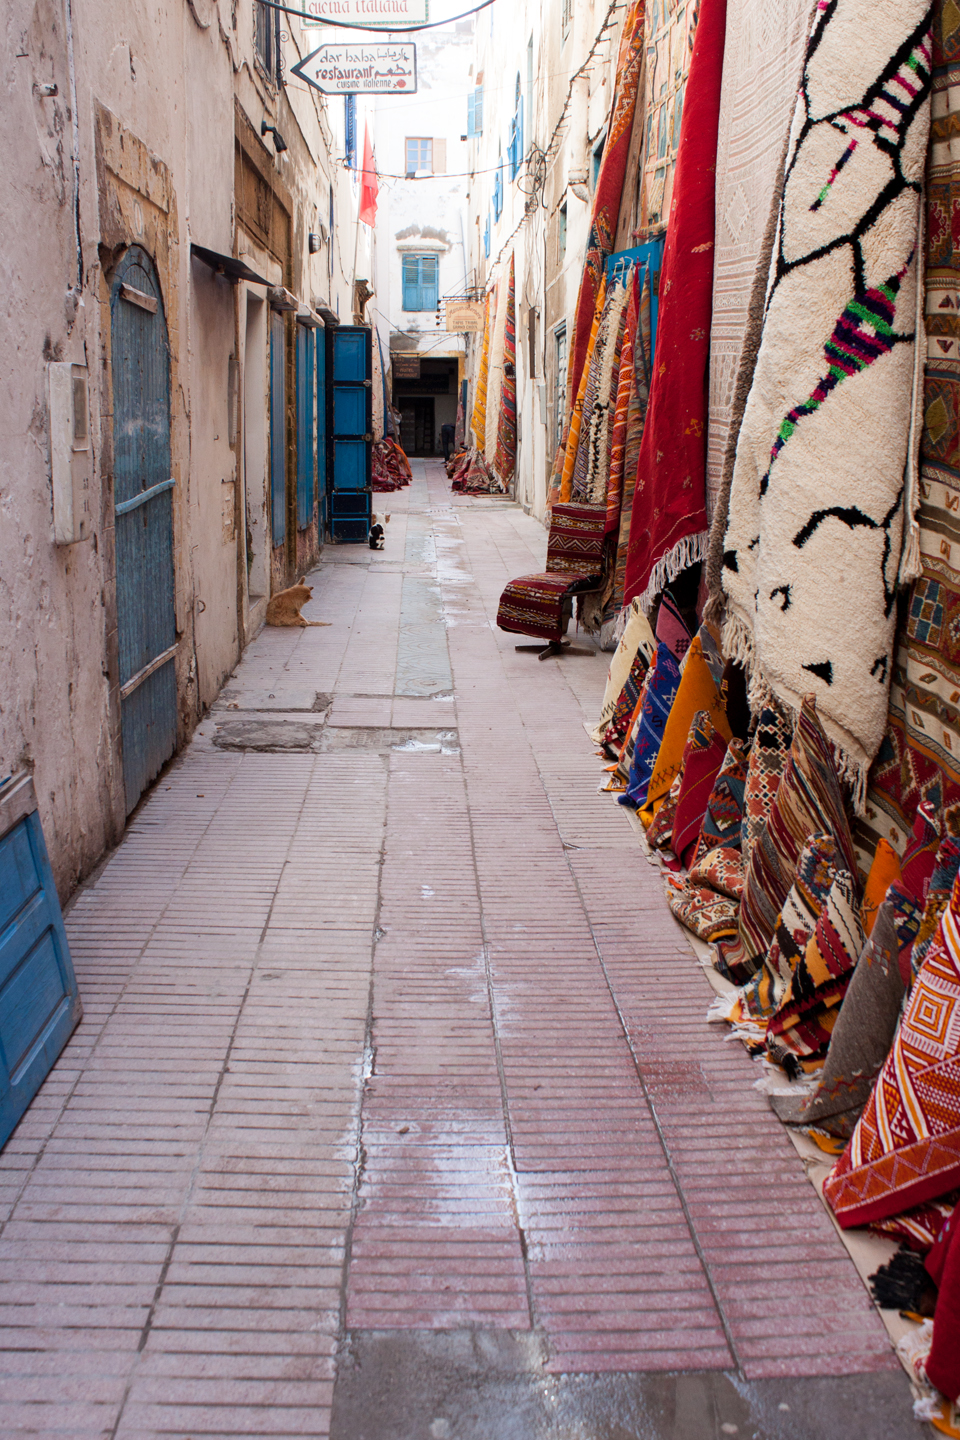 Carpets for sale in Essaouira